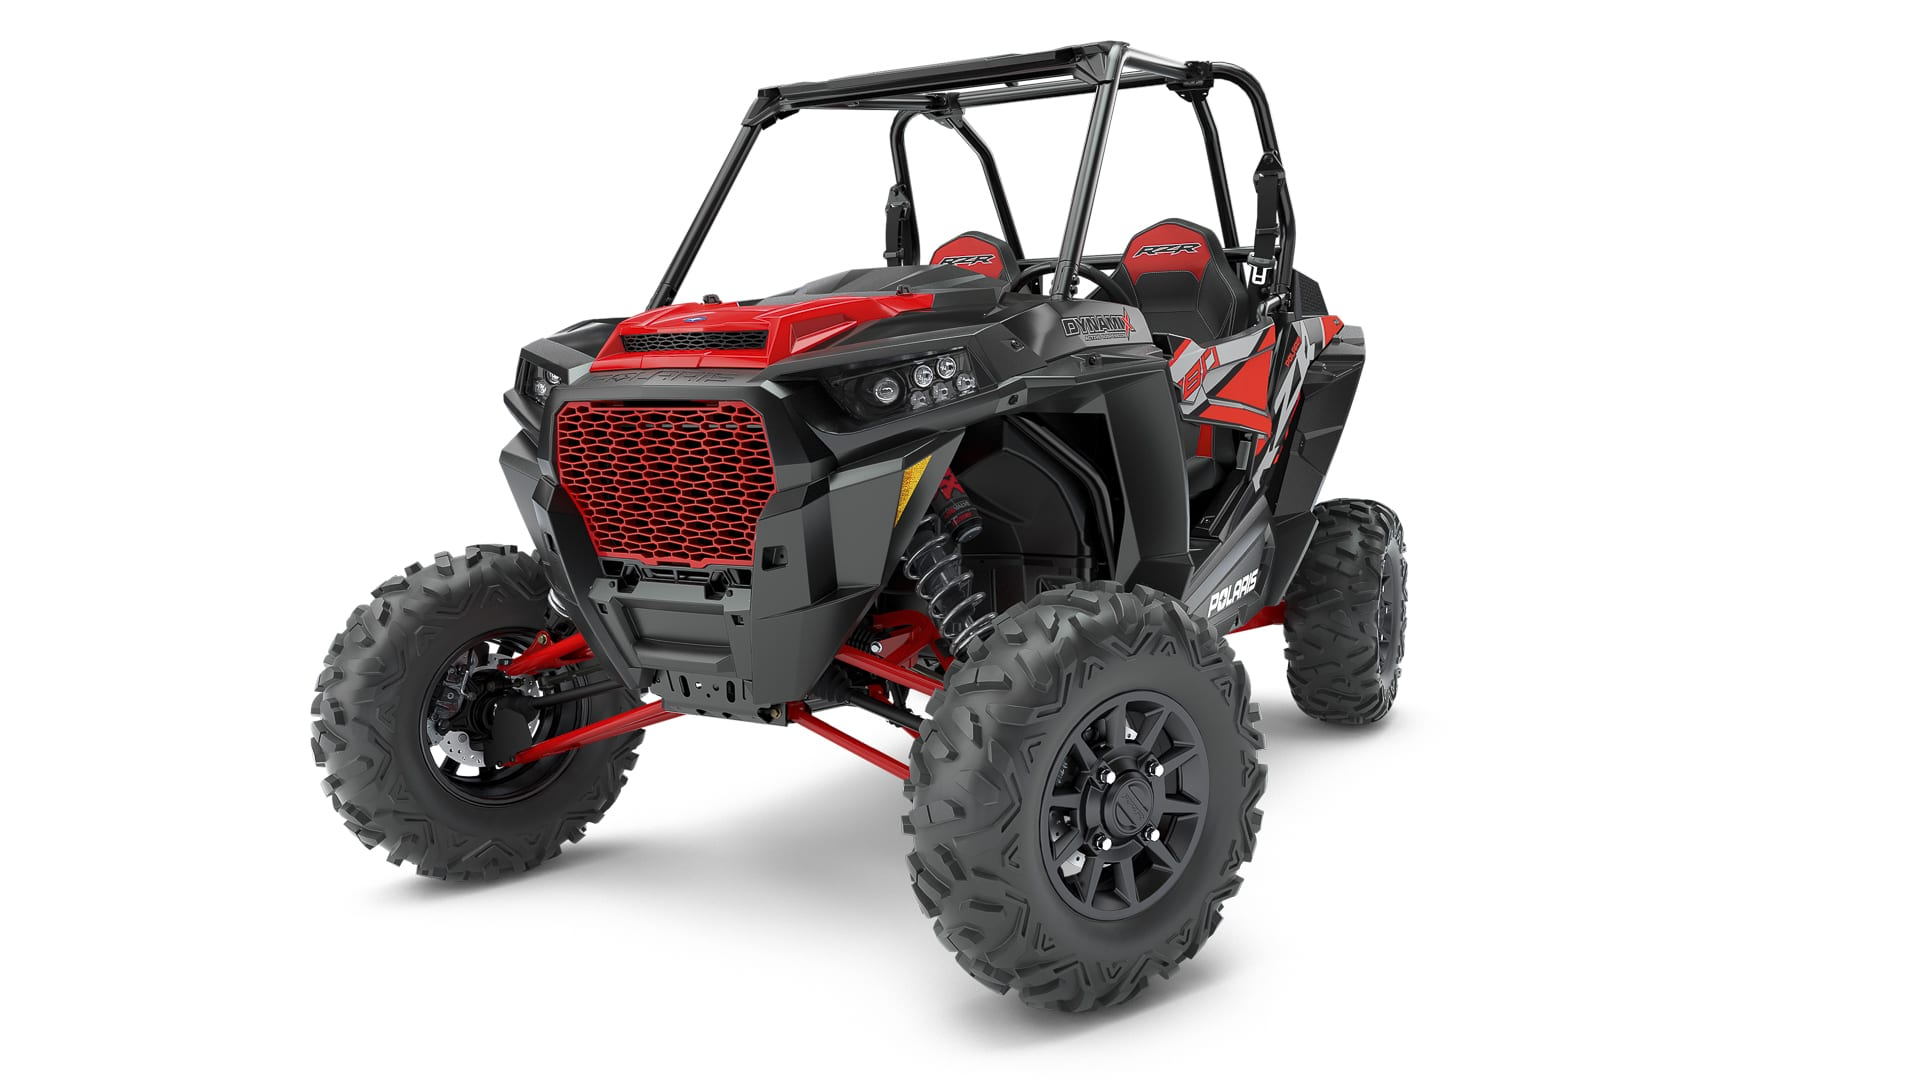 2018 Polaris RZR Lineup | ATV Trail Rider Magazine